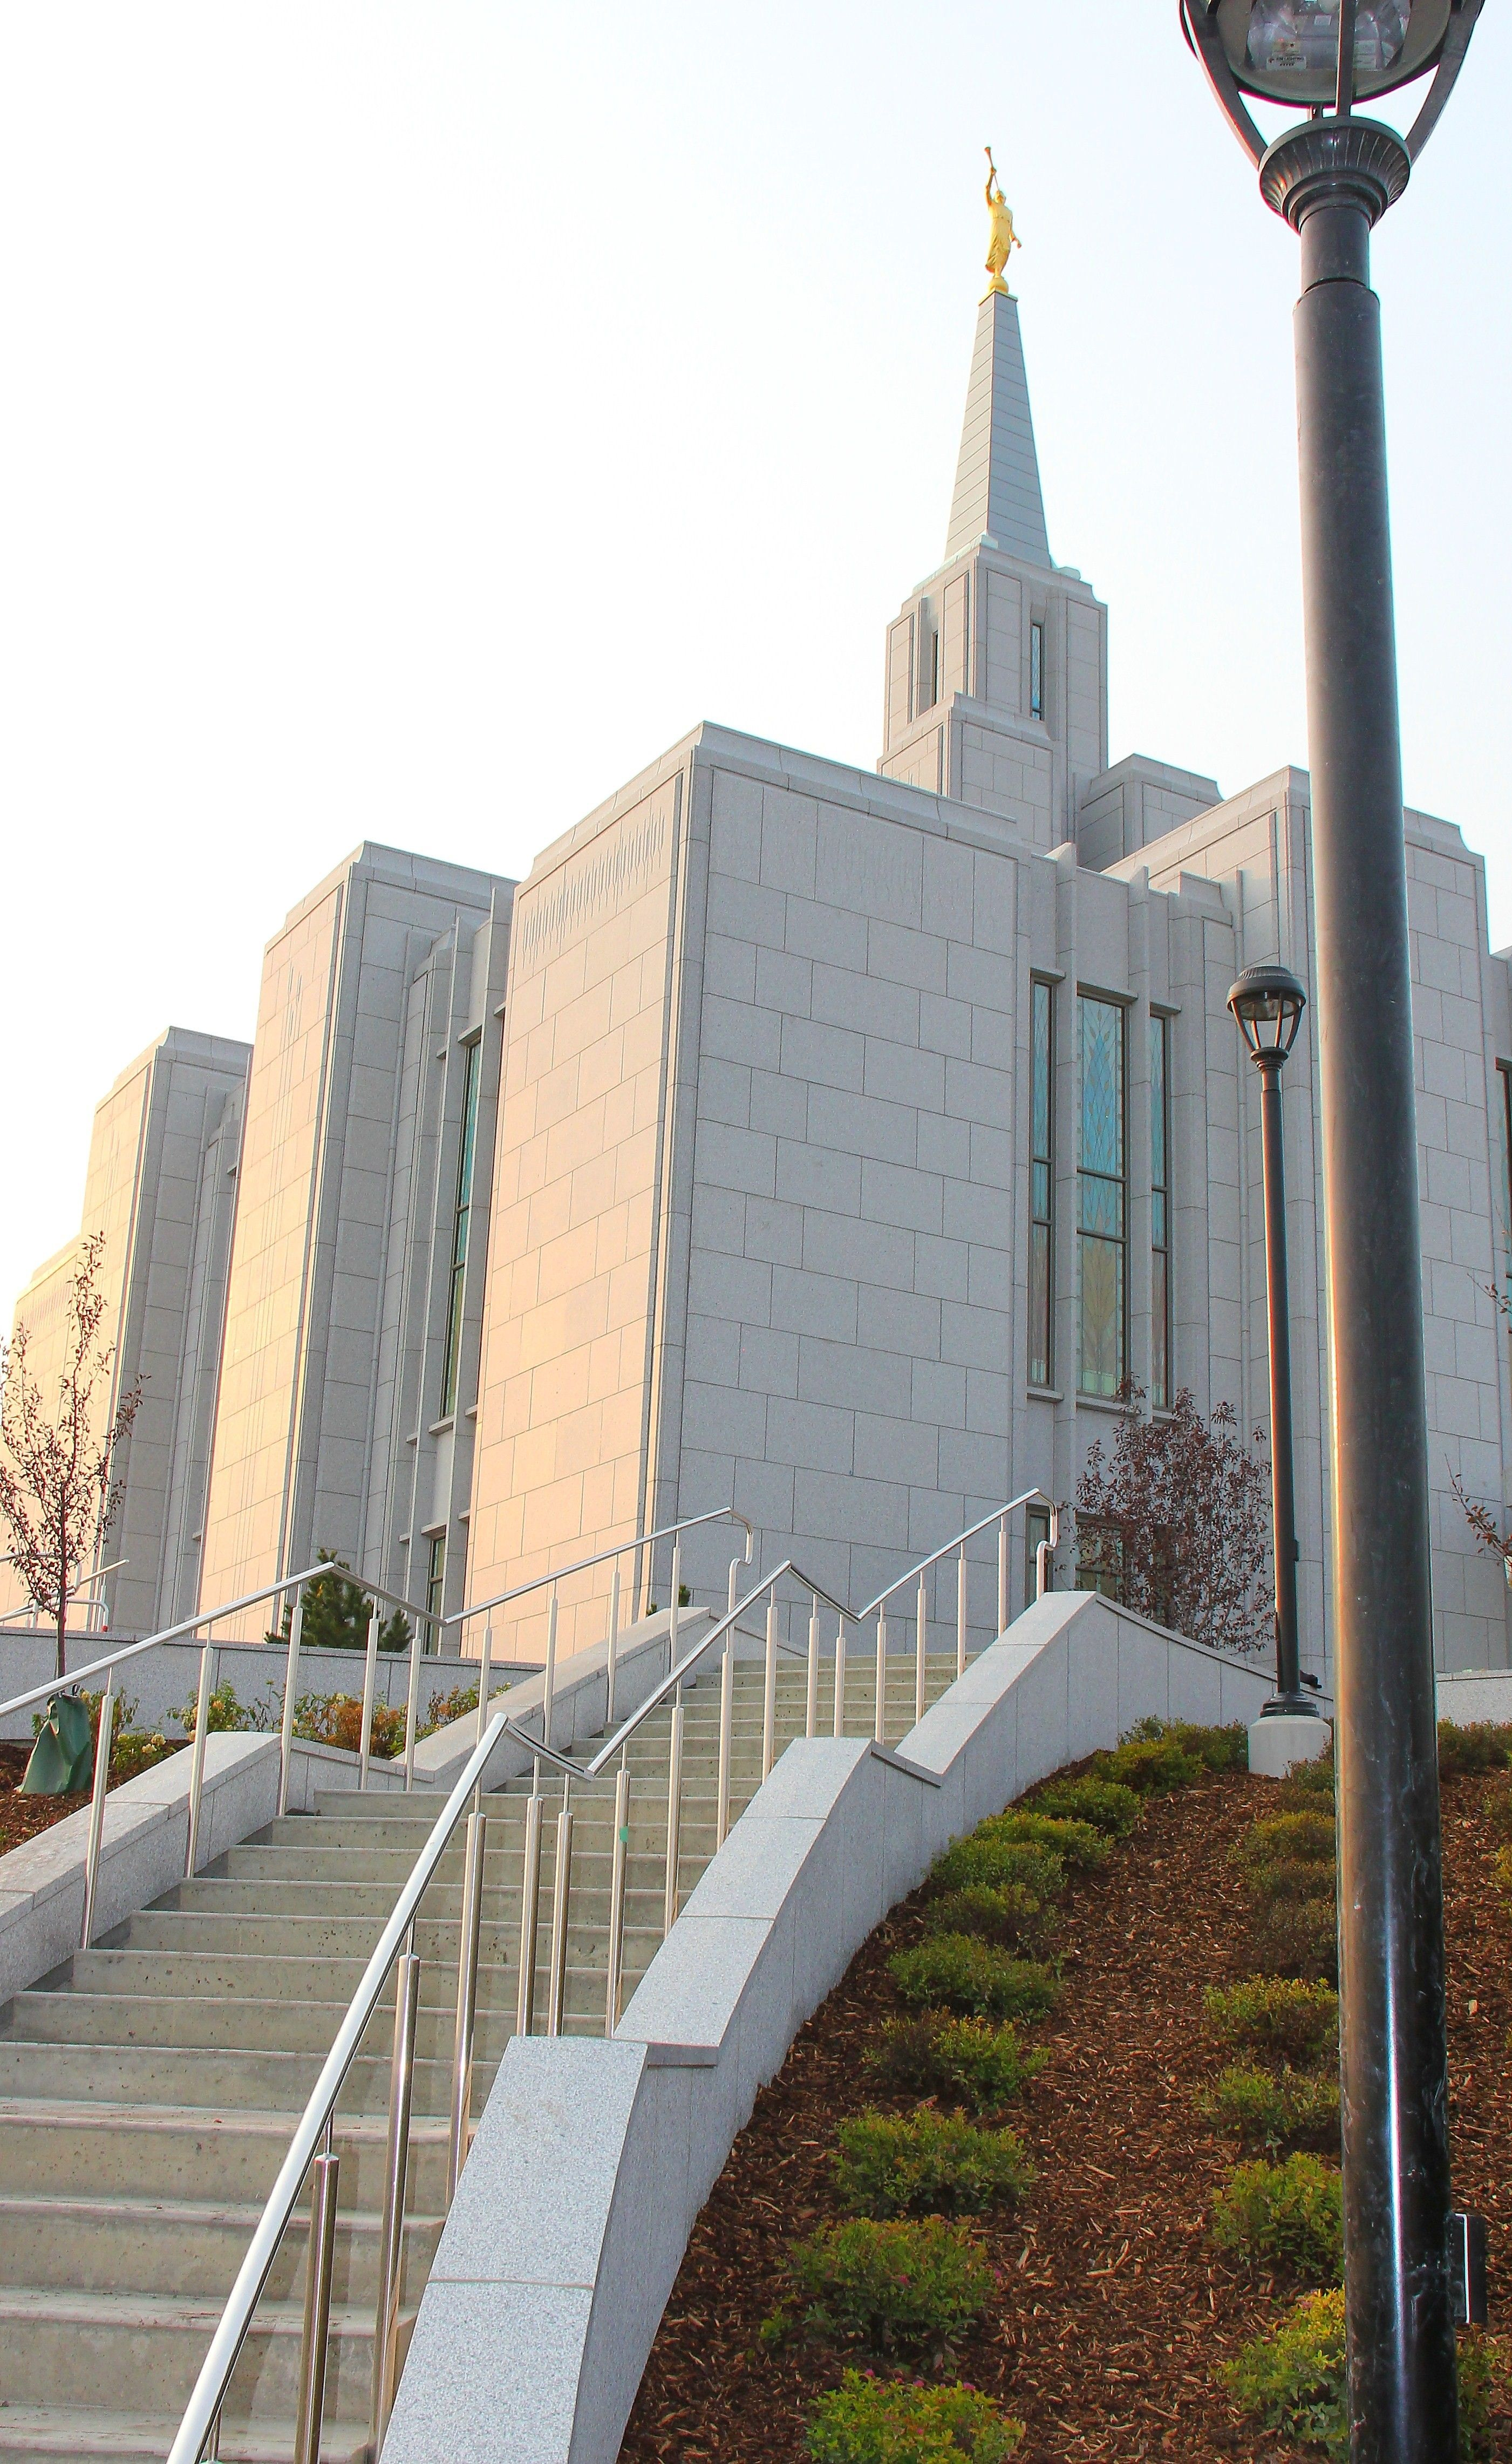 Stairs ascend from the temple grounds and lead to the entrance of the Calgary Alberta Temple.